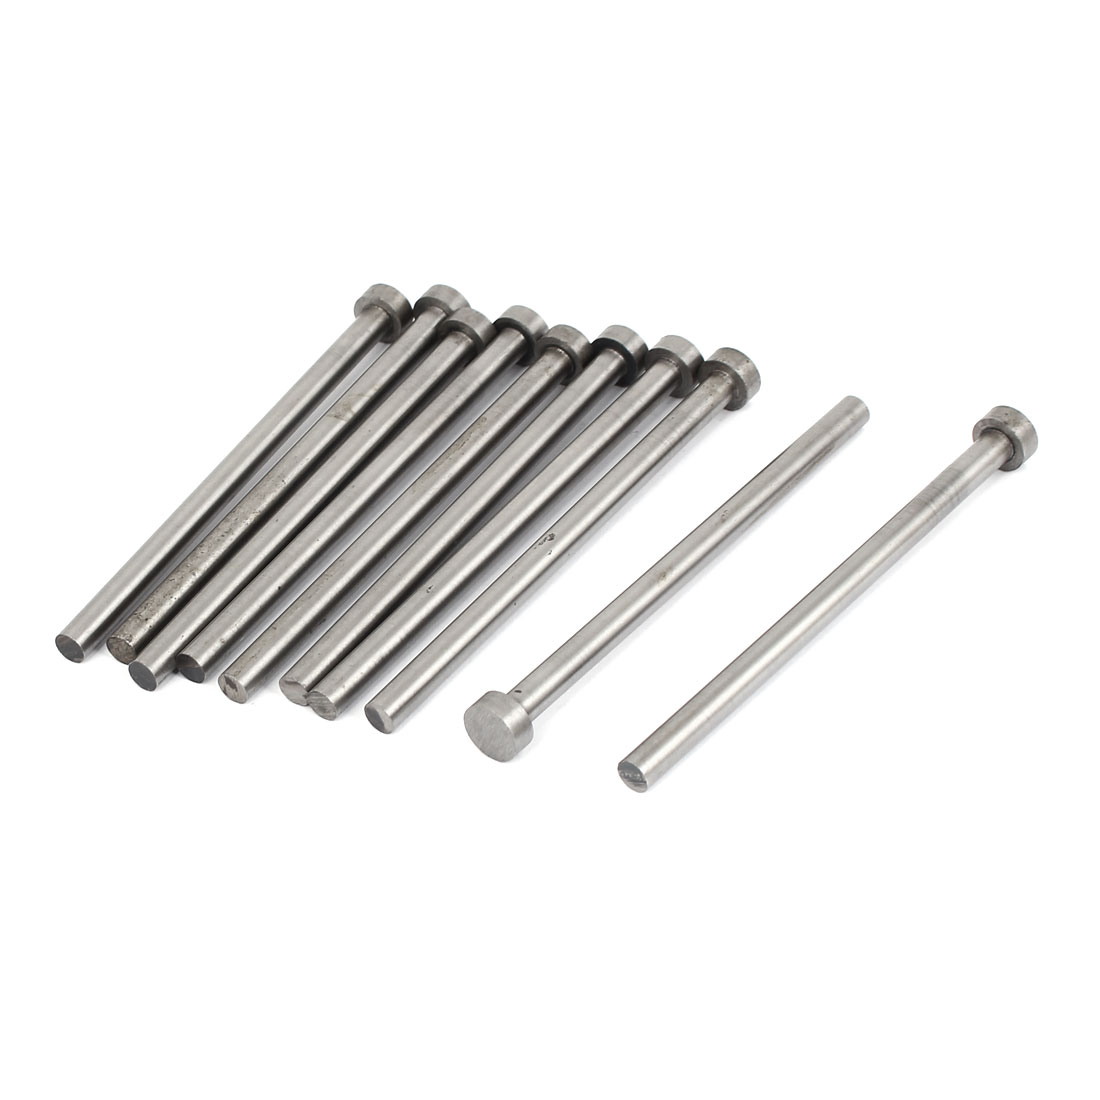 Mould Manufacturing 11mm Tip Straight Ejector Pins Silver Gray 10PCS